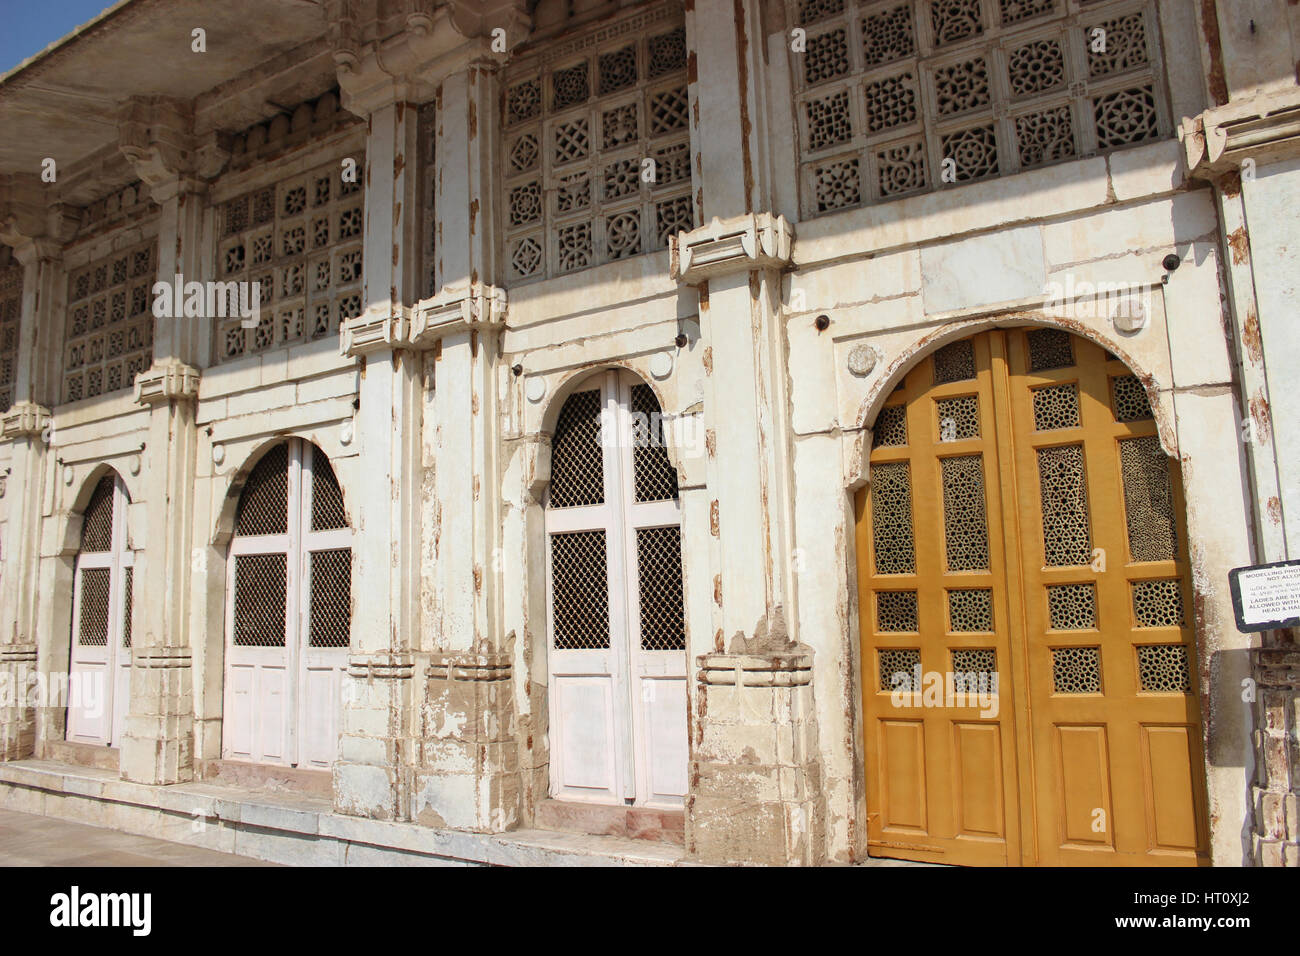 Stone jali work on the doors and walls and niches. Sarkhej Roza, Ahmedabad, Gujarat India - Stock Image